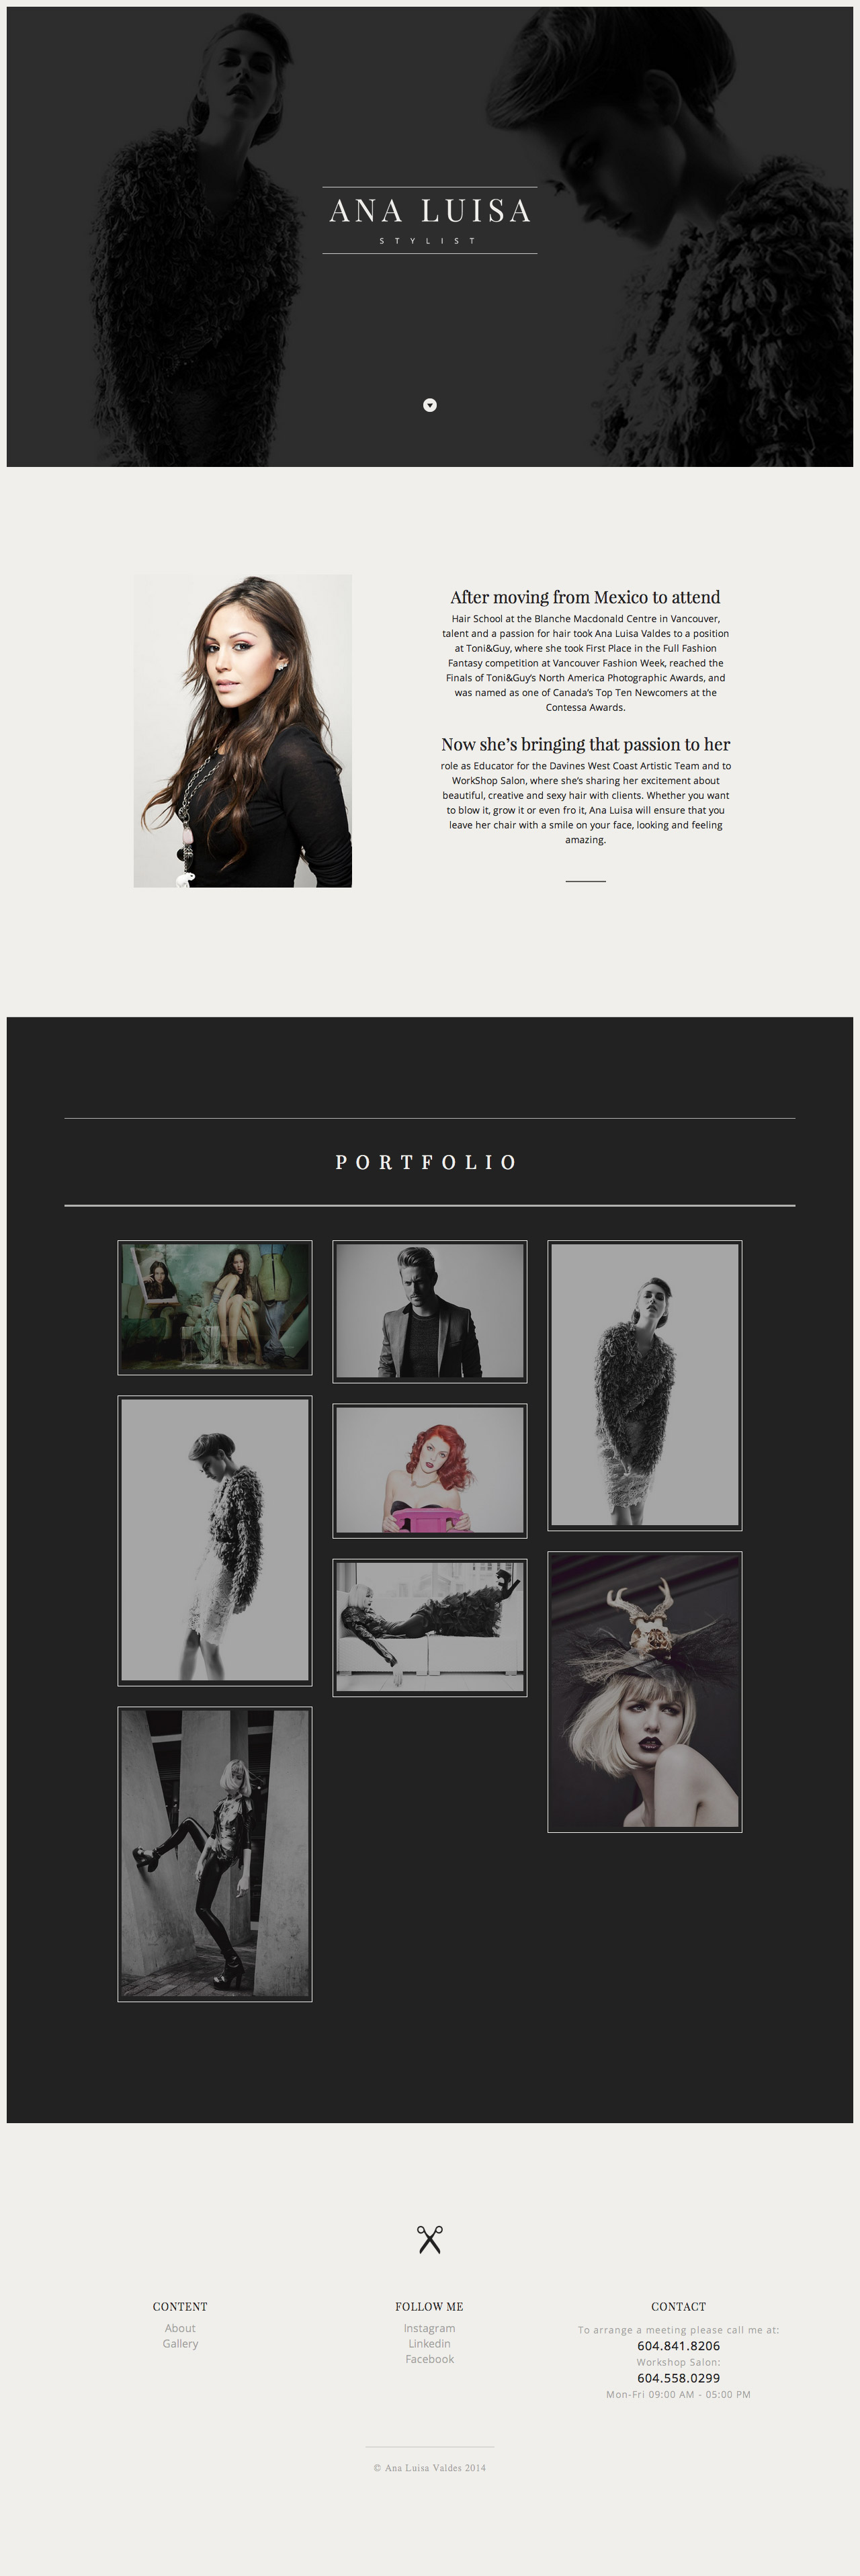 Ana Luisa Website Screenshot